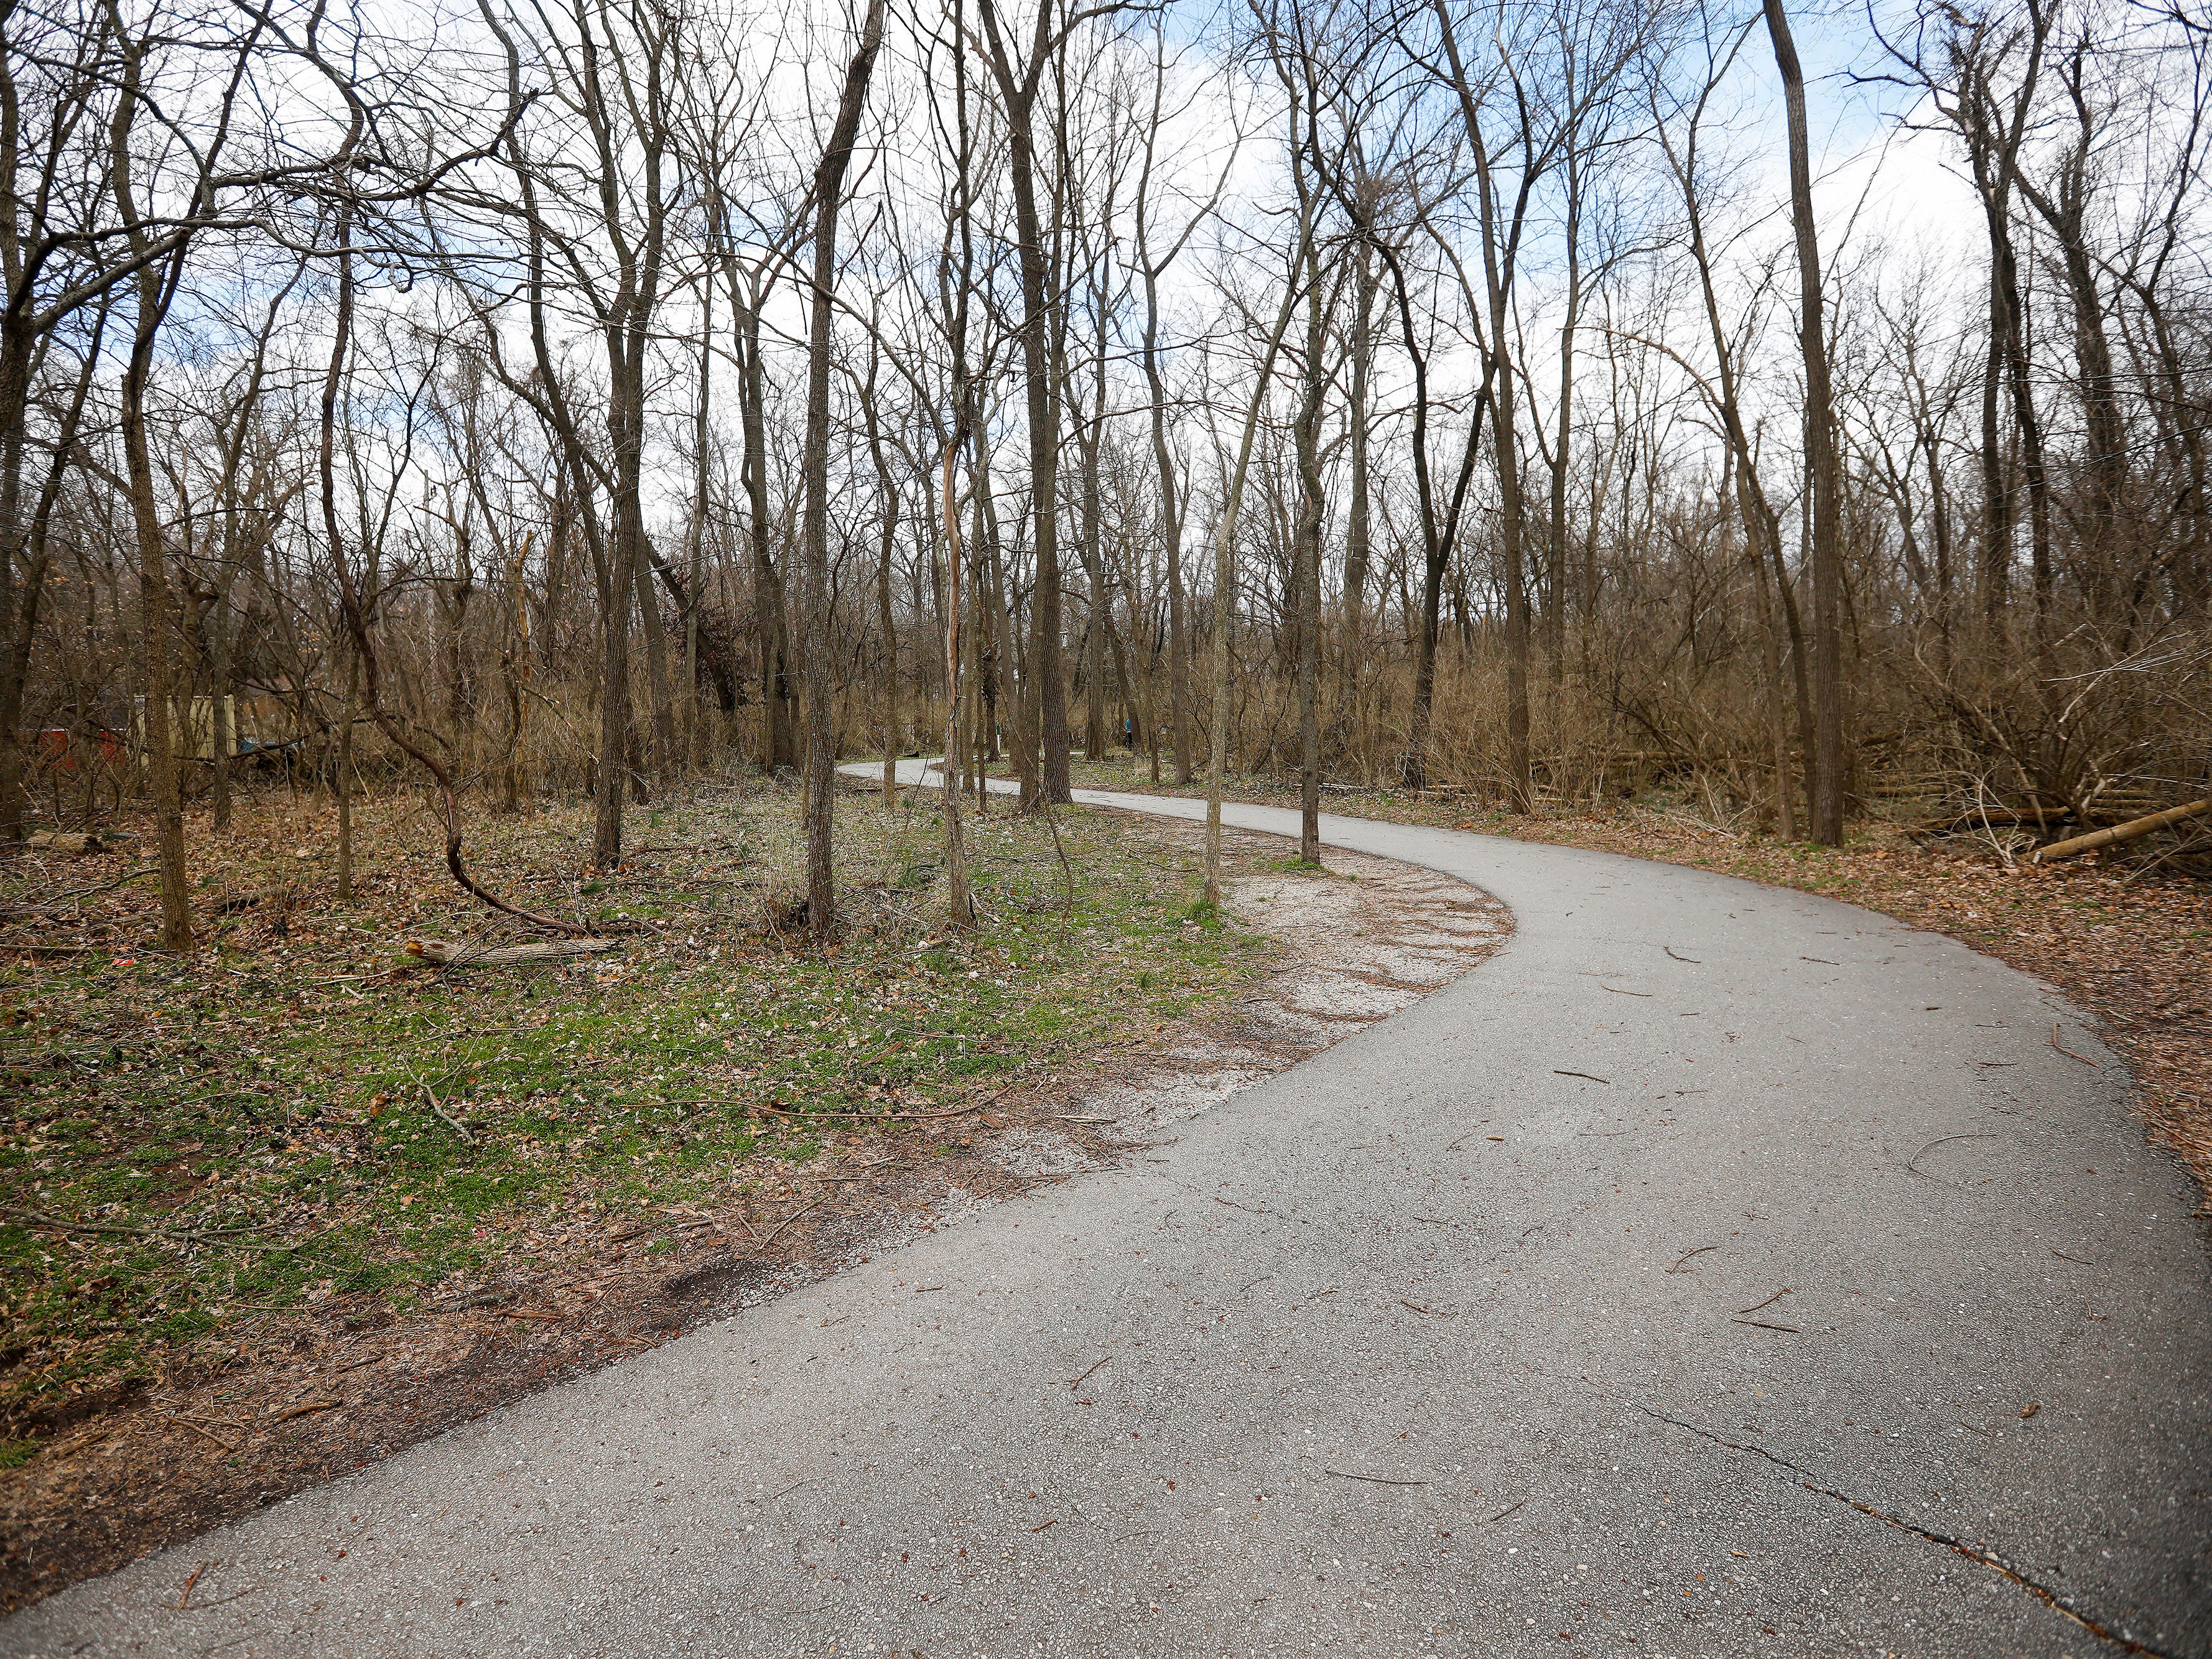 The Galloway Creek Greenway Trail runs through Sequiota Park.